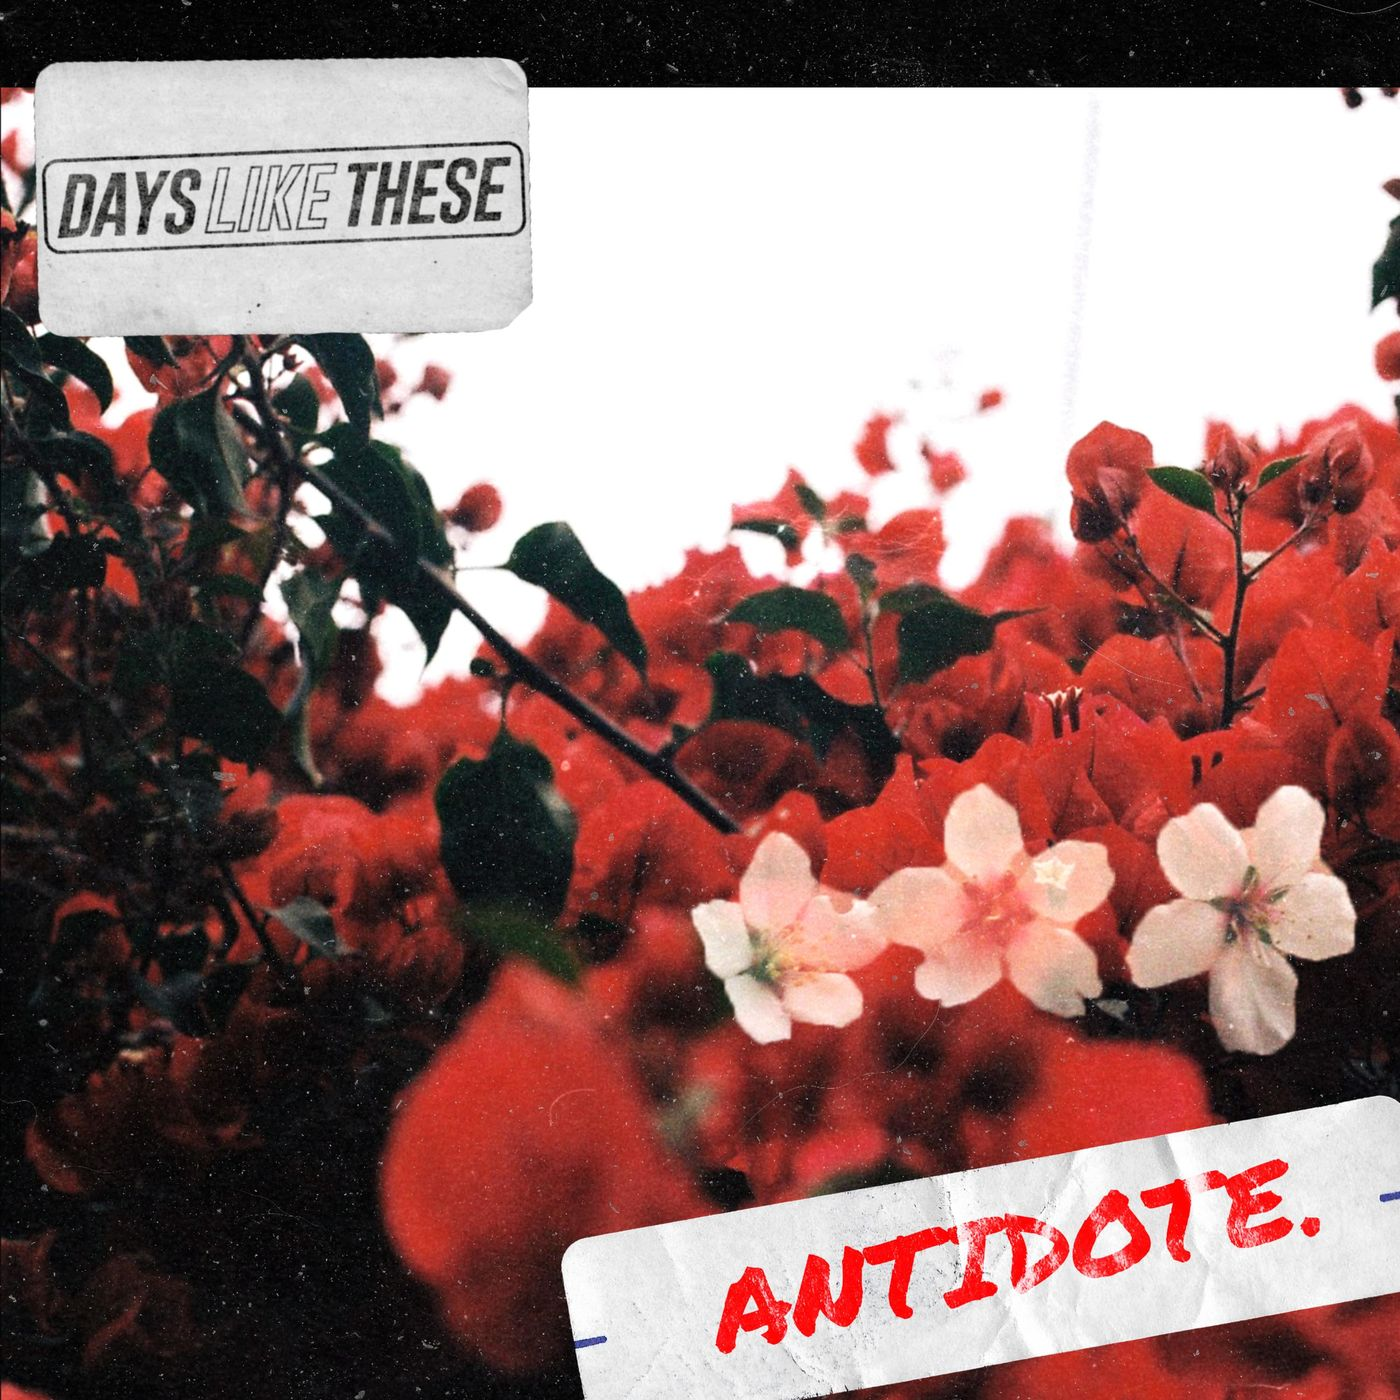 Days Like These - Antidote [single] (2019)